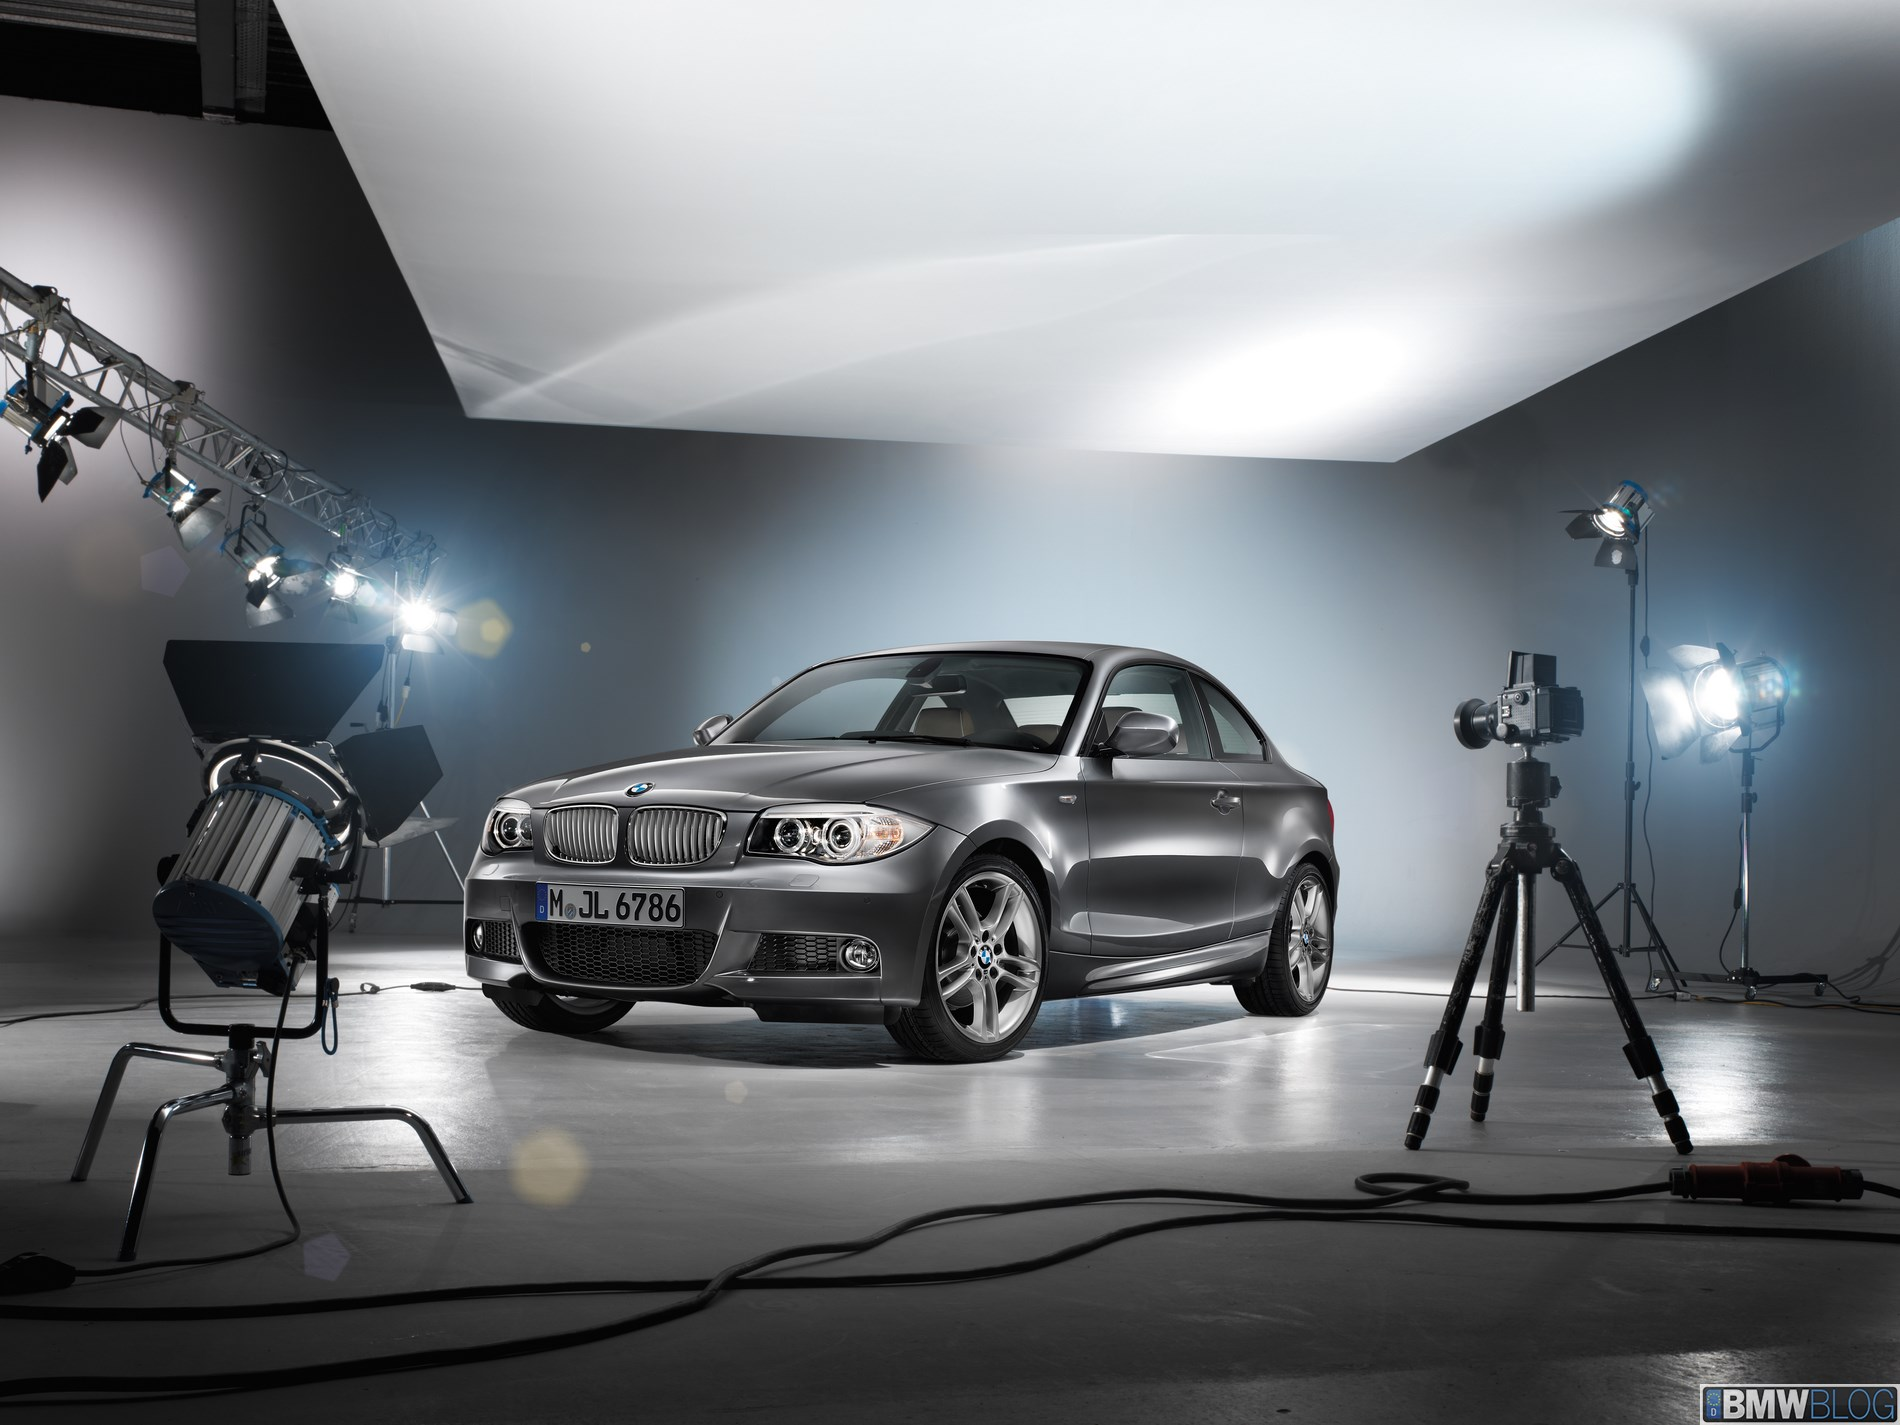 BMW 1 Series Coupe and BMW 1 Series Convertible Limited Edition Lifestyle 01